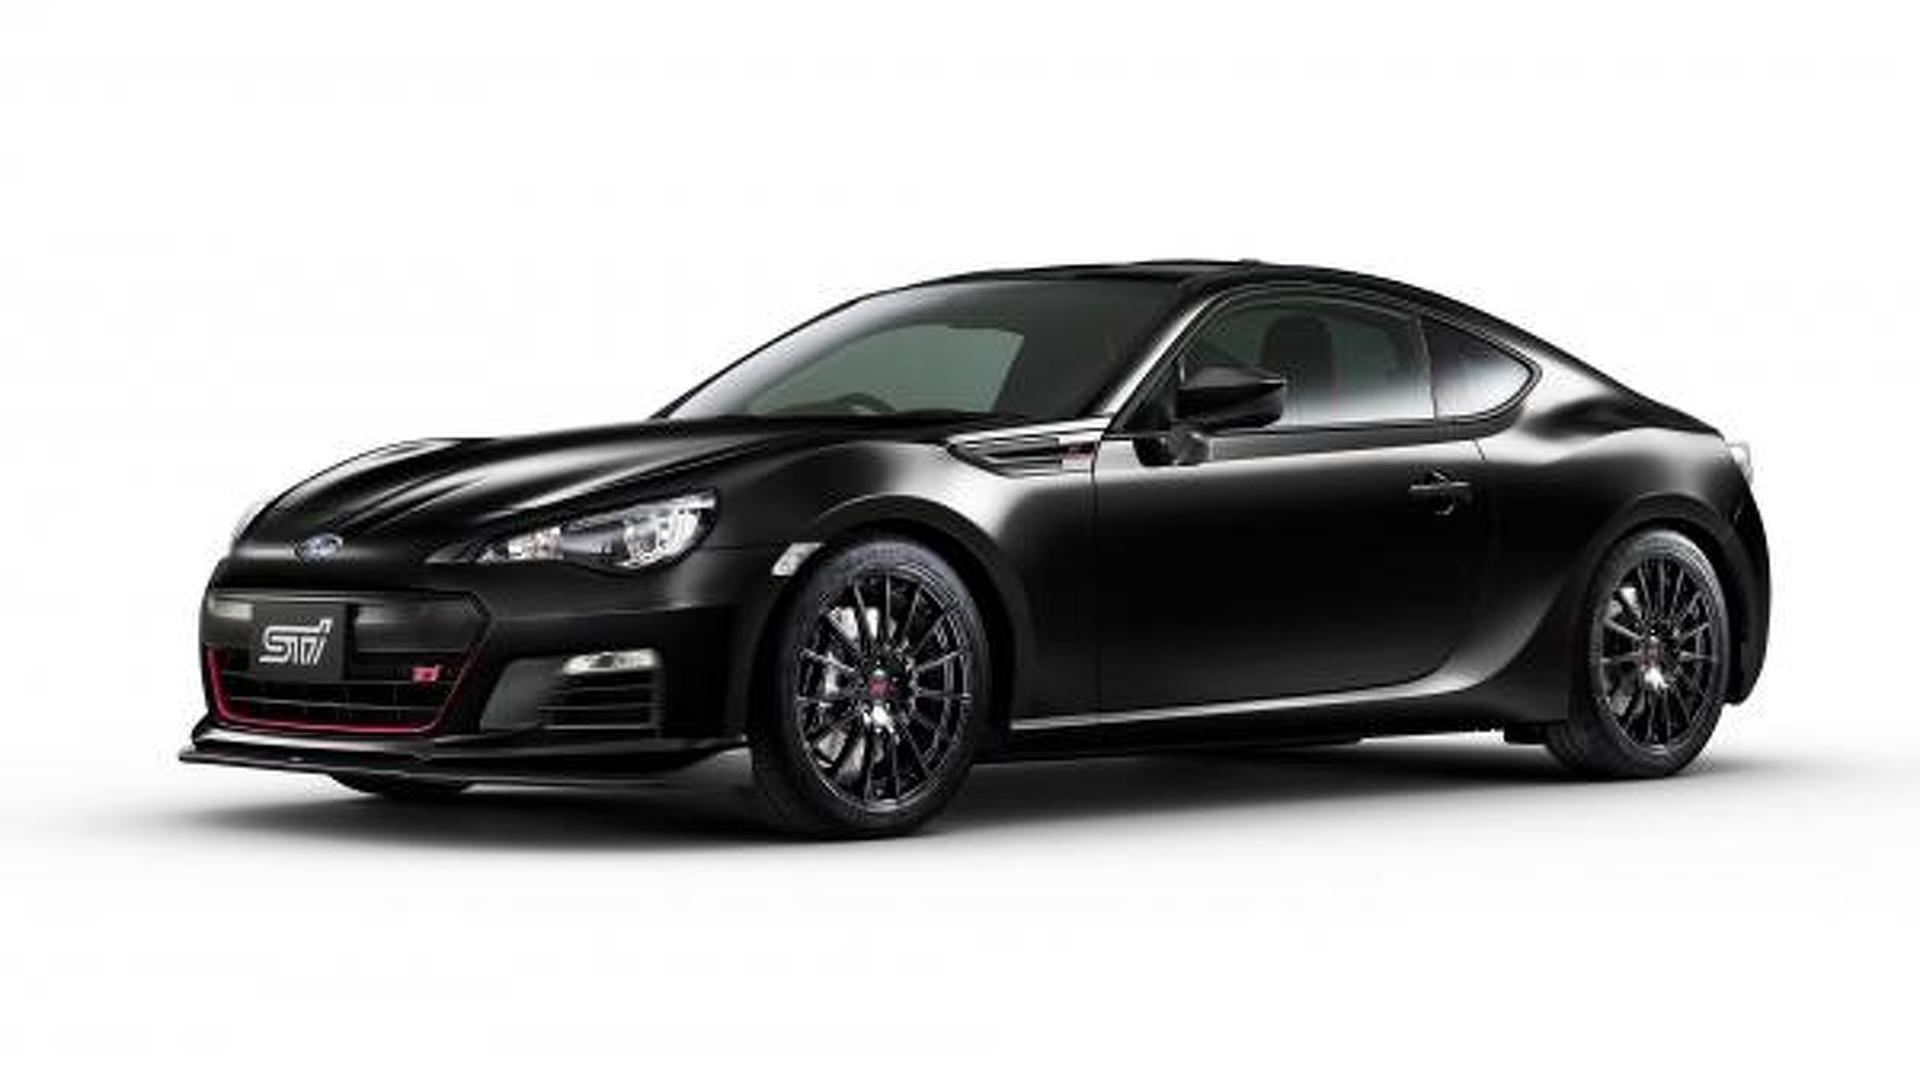 2015 Subaru Brz Ts Sti Launched In Japan With Several Mechanical